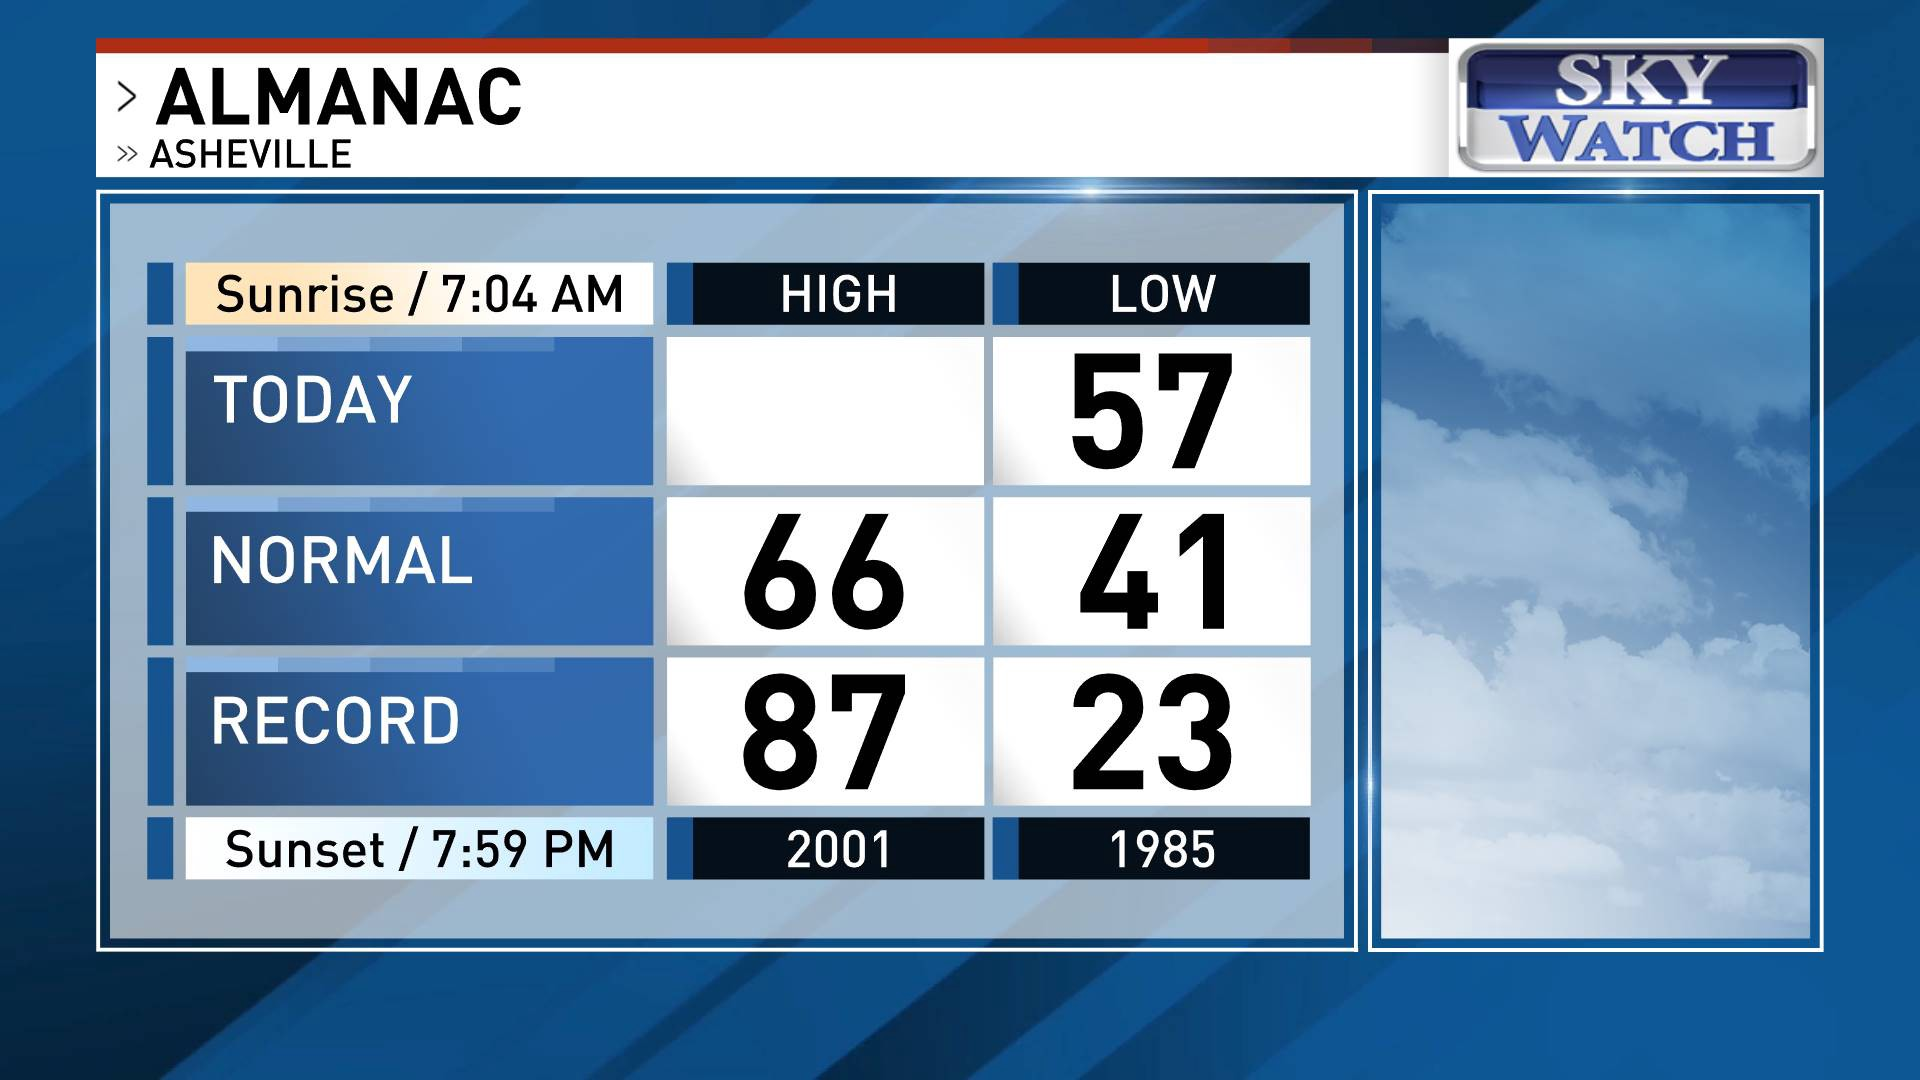 Weather almanac image showing today's temperature, normal highs and lows, and record temperatures in Asheville, NC.